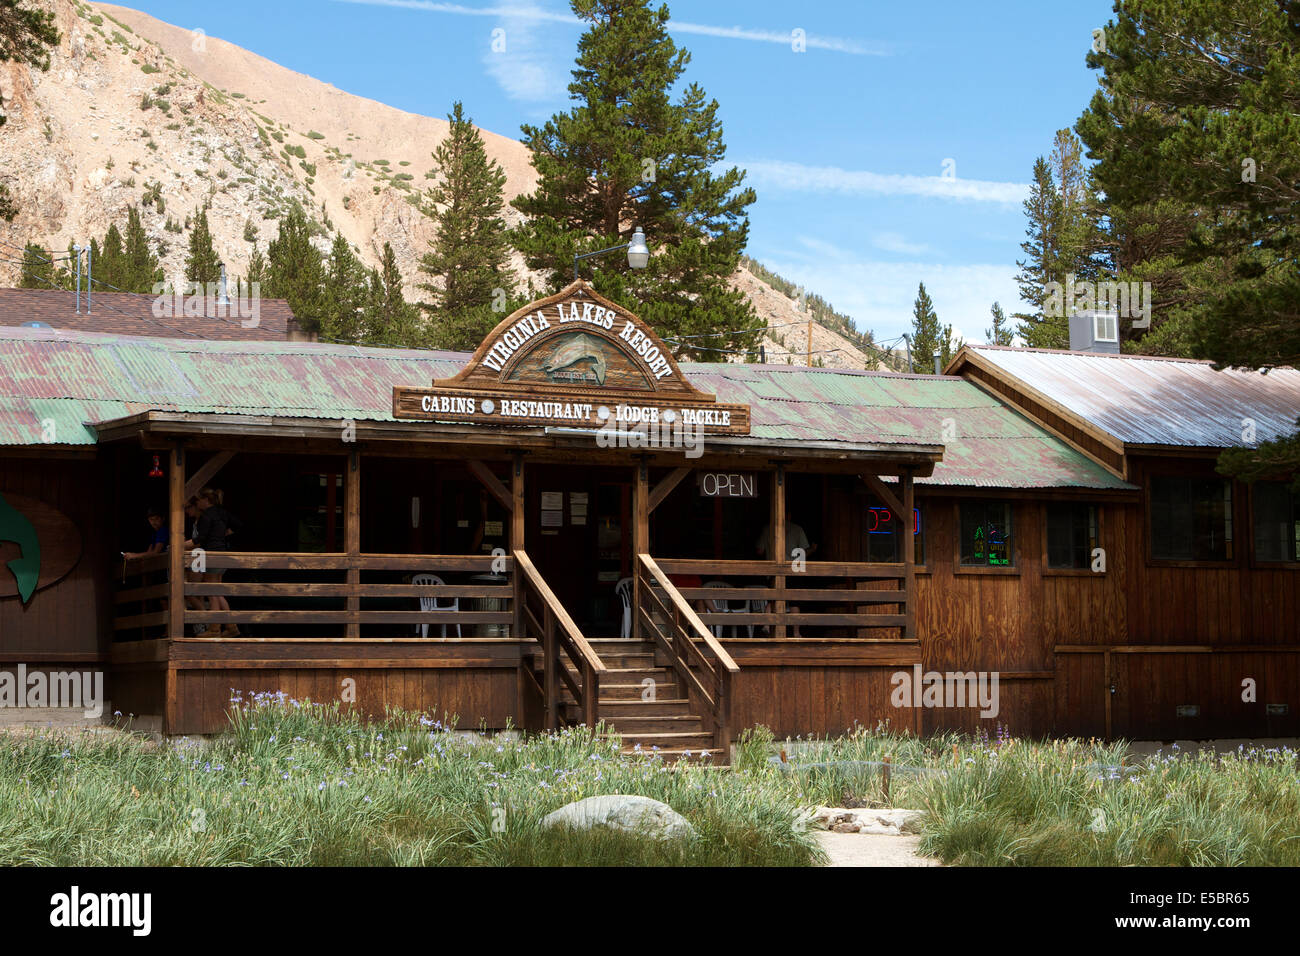 Wood Built With Corrugated Metal Roof The Virginia Lakes